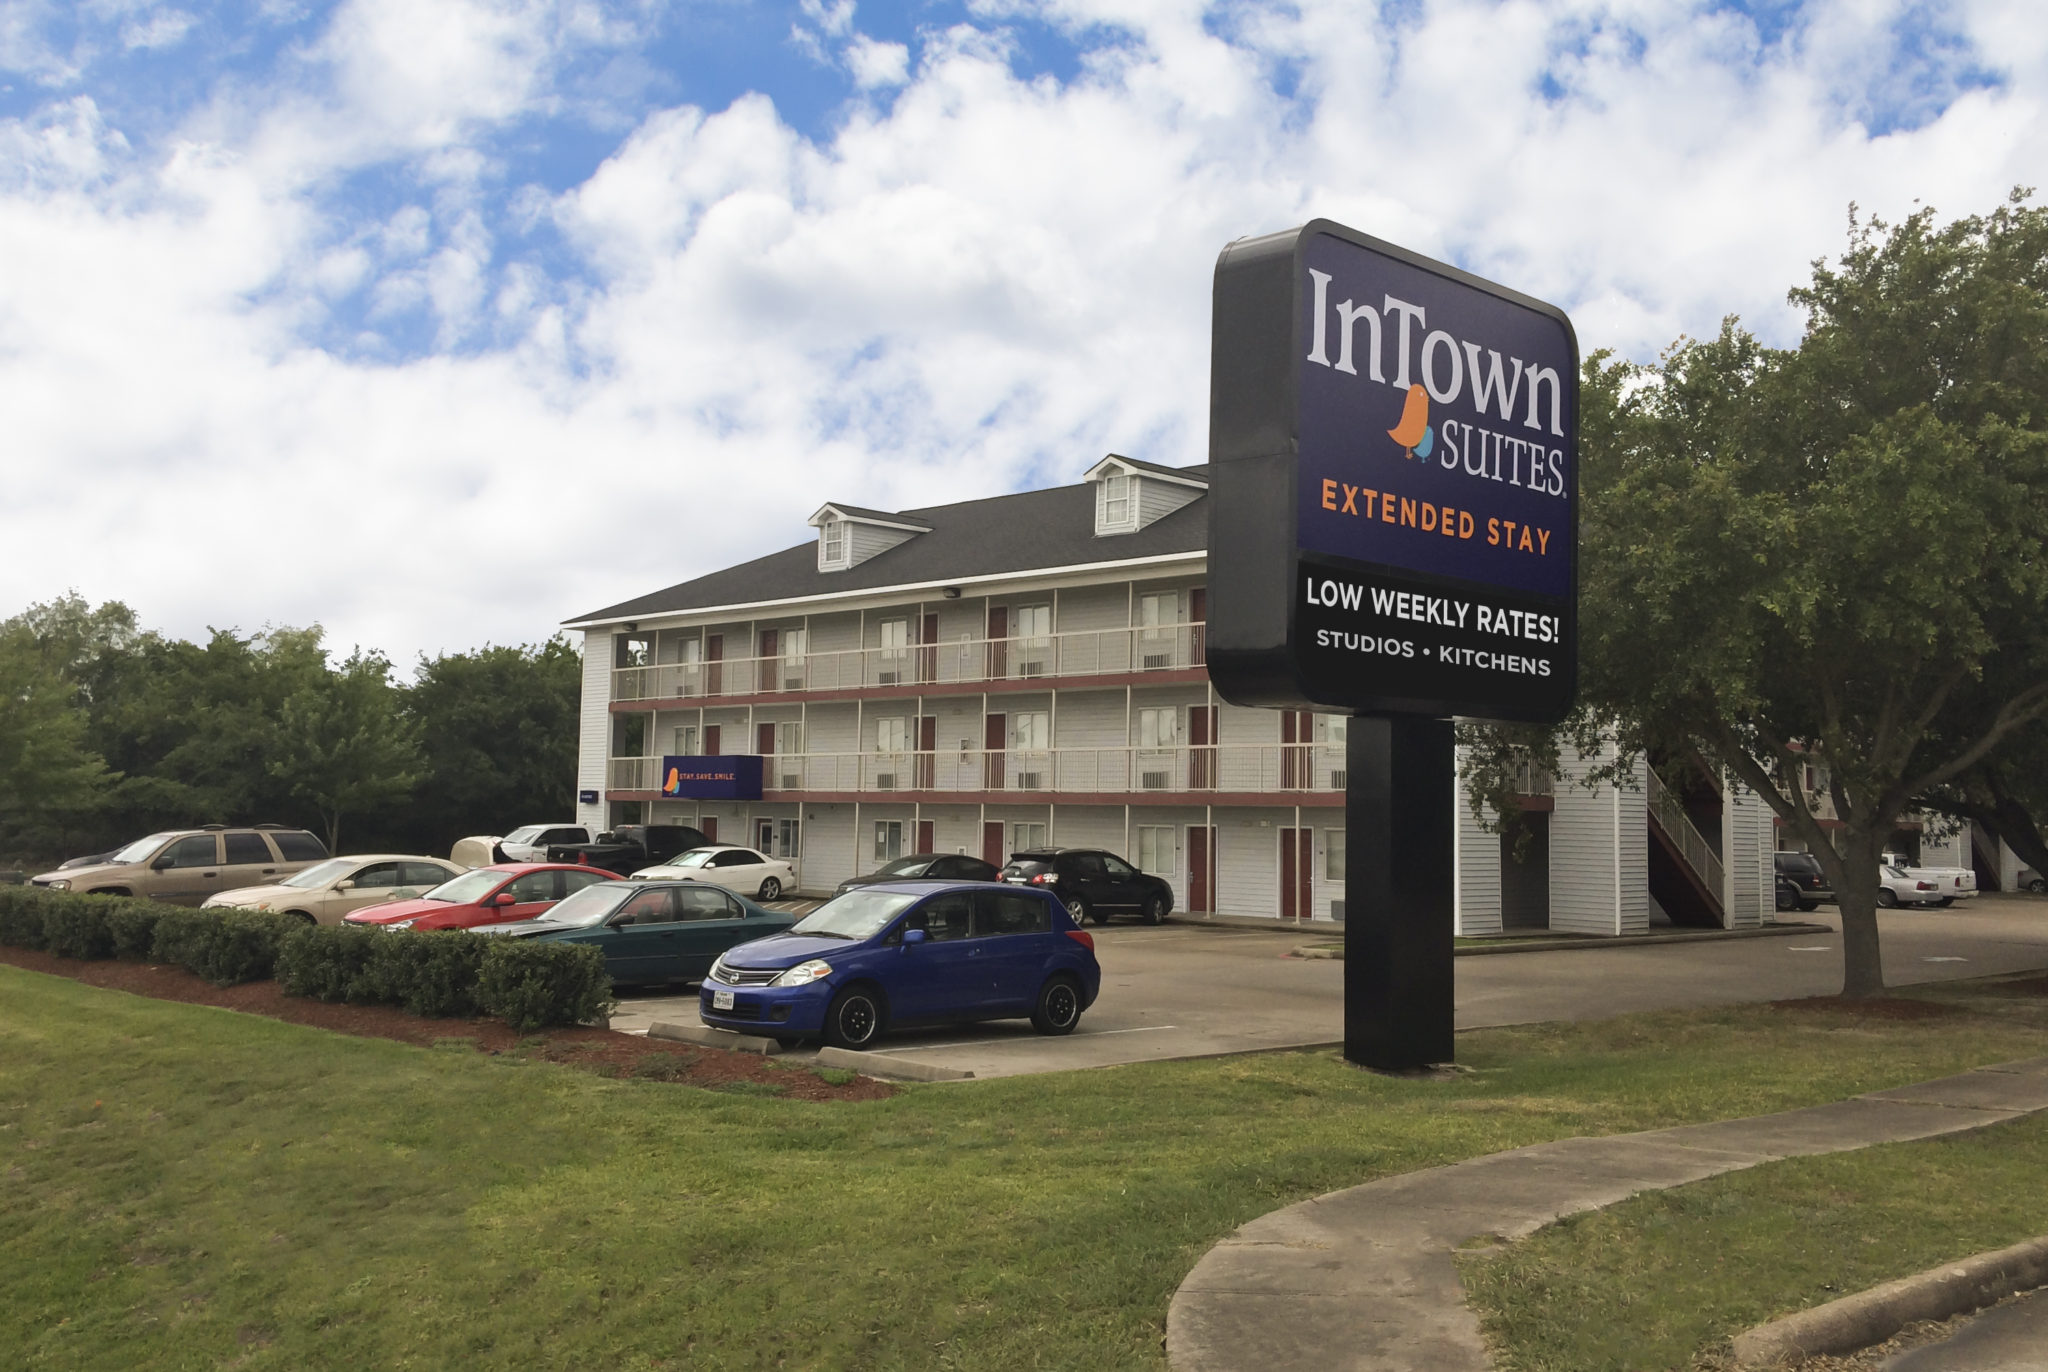 InTown Suites Extended Stay Houston TX - West Oaks